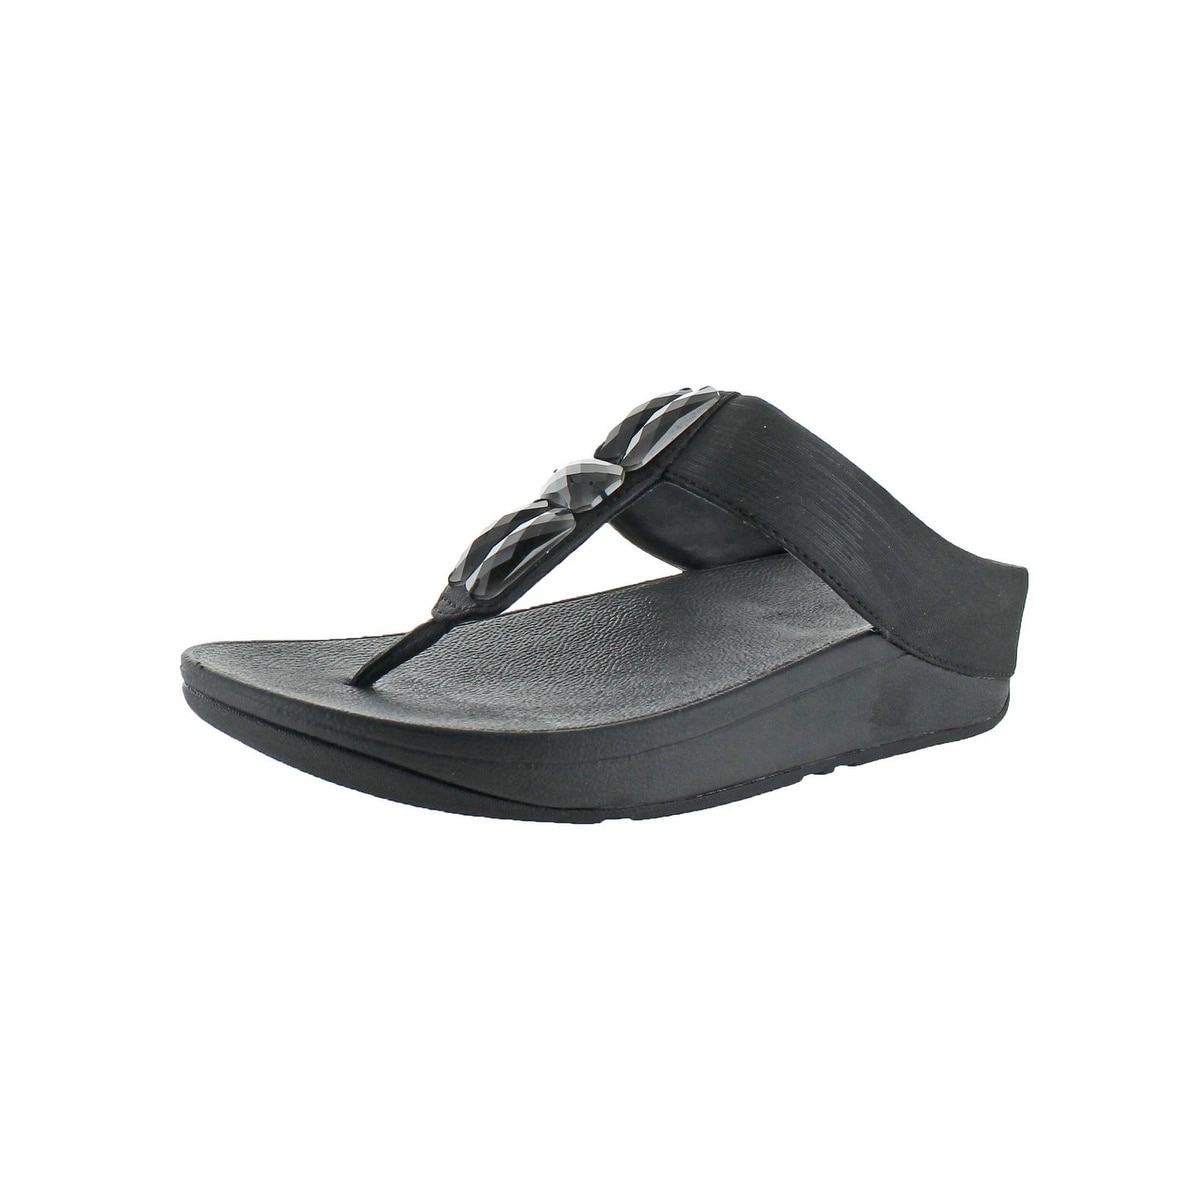 3e7c37443c792 Fitflop Womens Sweetie Thong Sandals Man Made Slip On